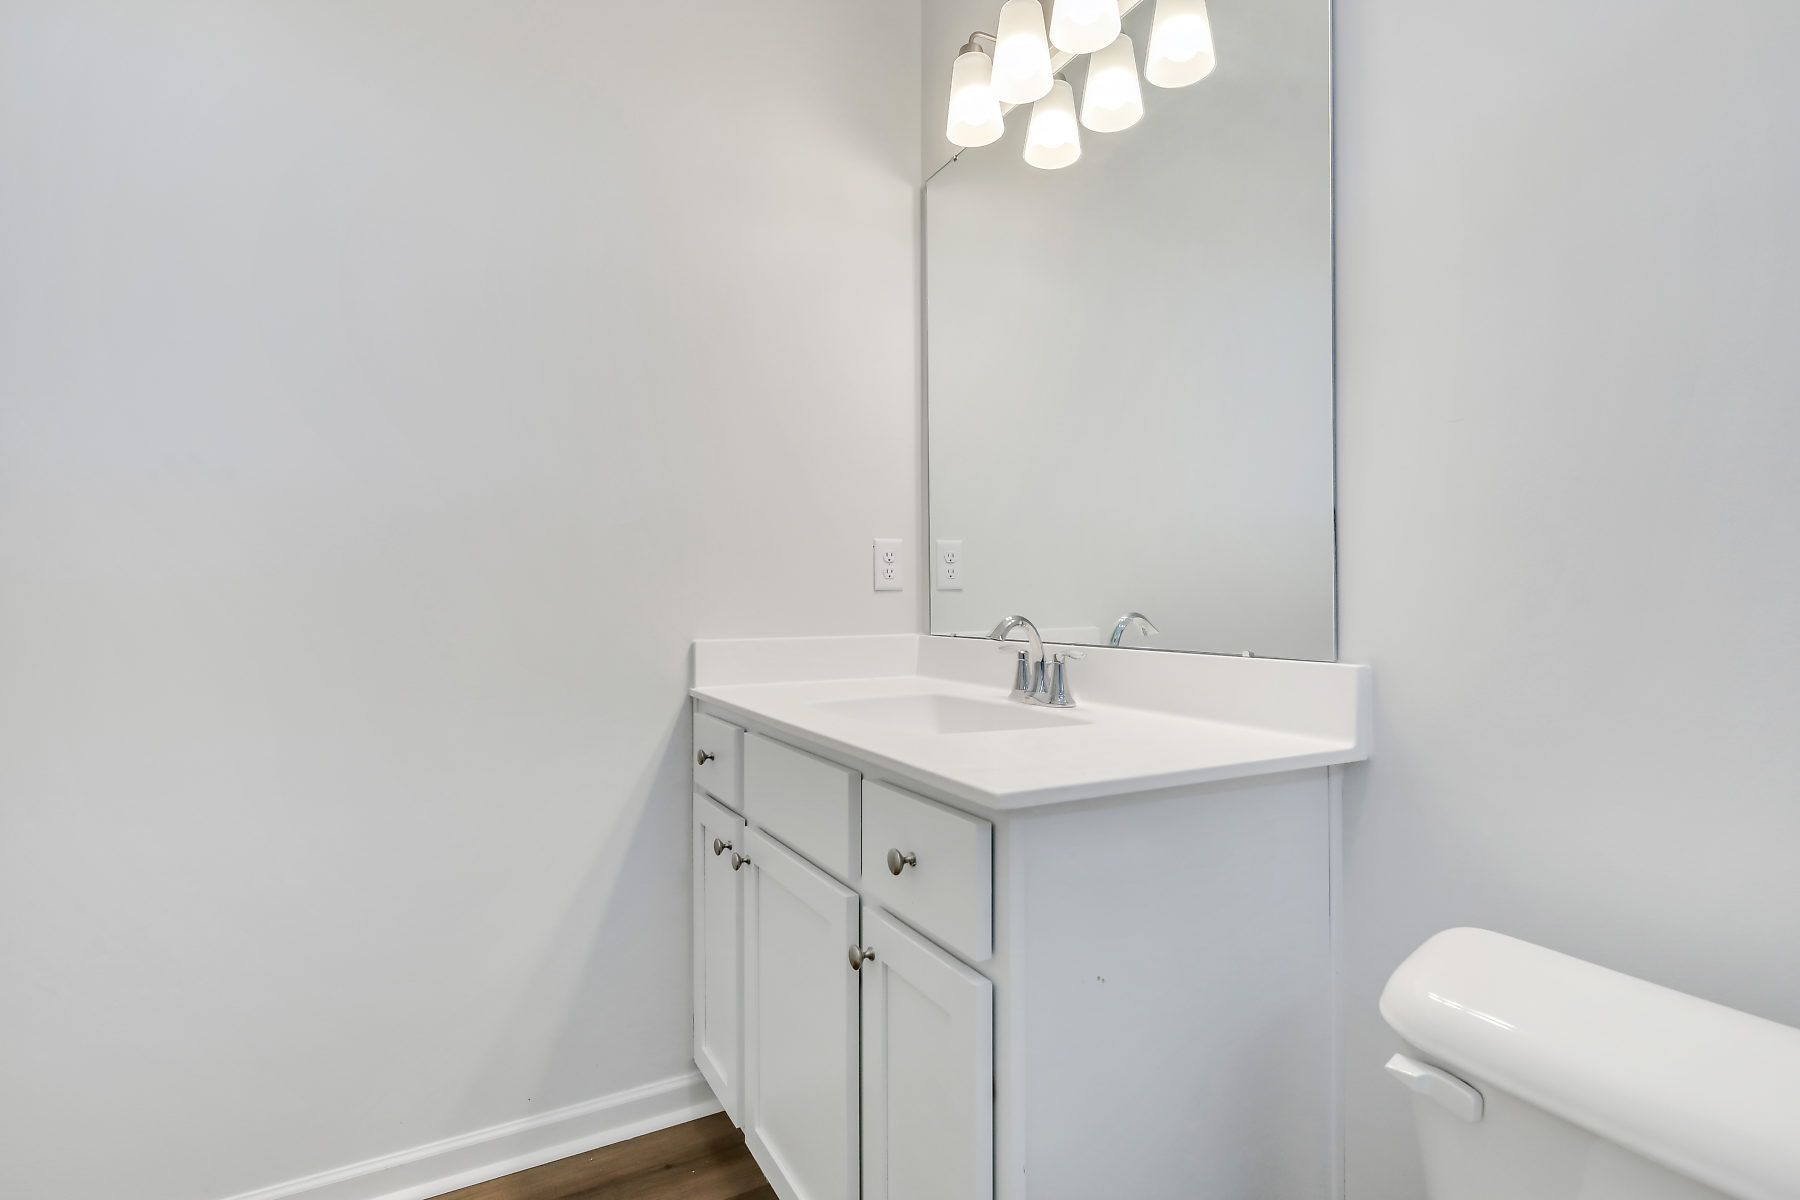 Bathroom featured in The Helmsley By Village Park Homes in Hilton Head, SC